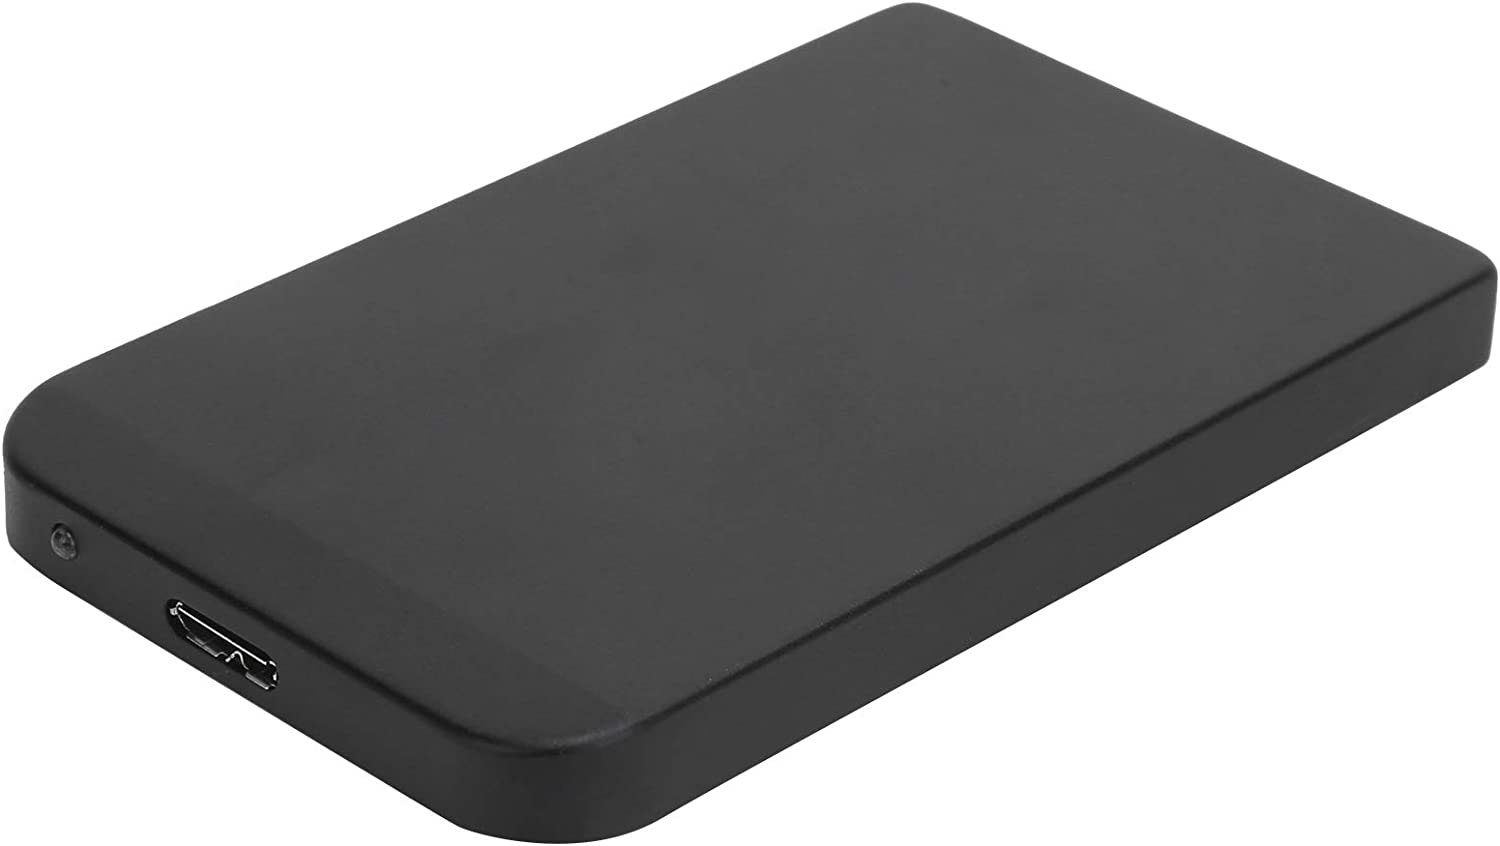 YD0004 USB to 3.0 2.5 Inch Portable Mobile Hard Drive, 80G 120G 250G 320G 500G 1TB 2TB Universal External Hard Drive for Computer Monitors and Laptop, Black(80G)